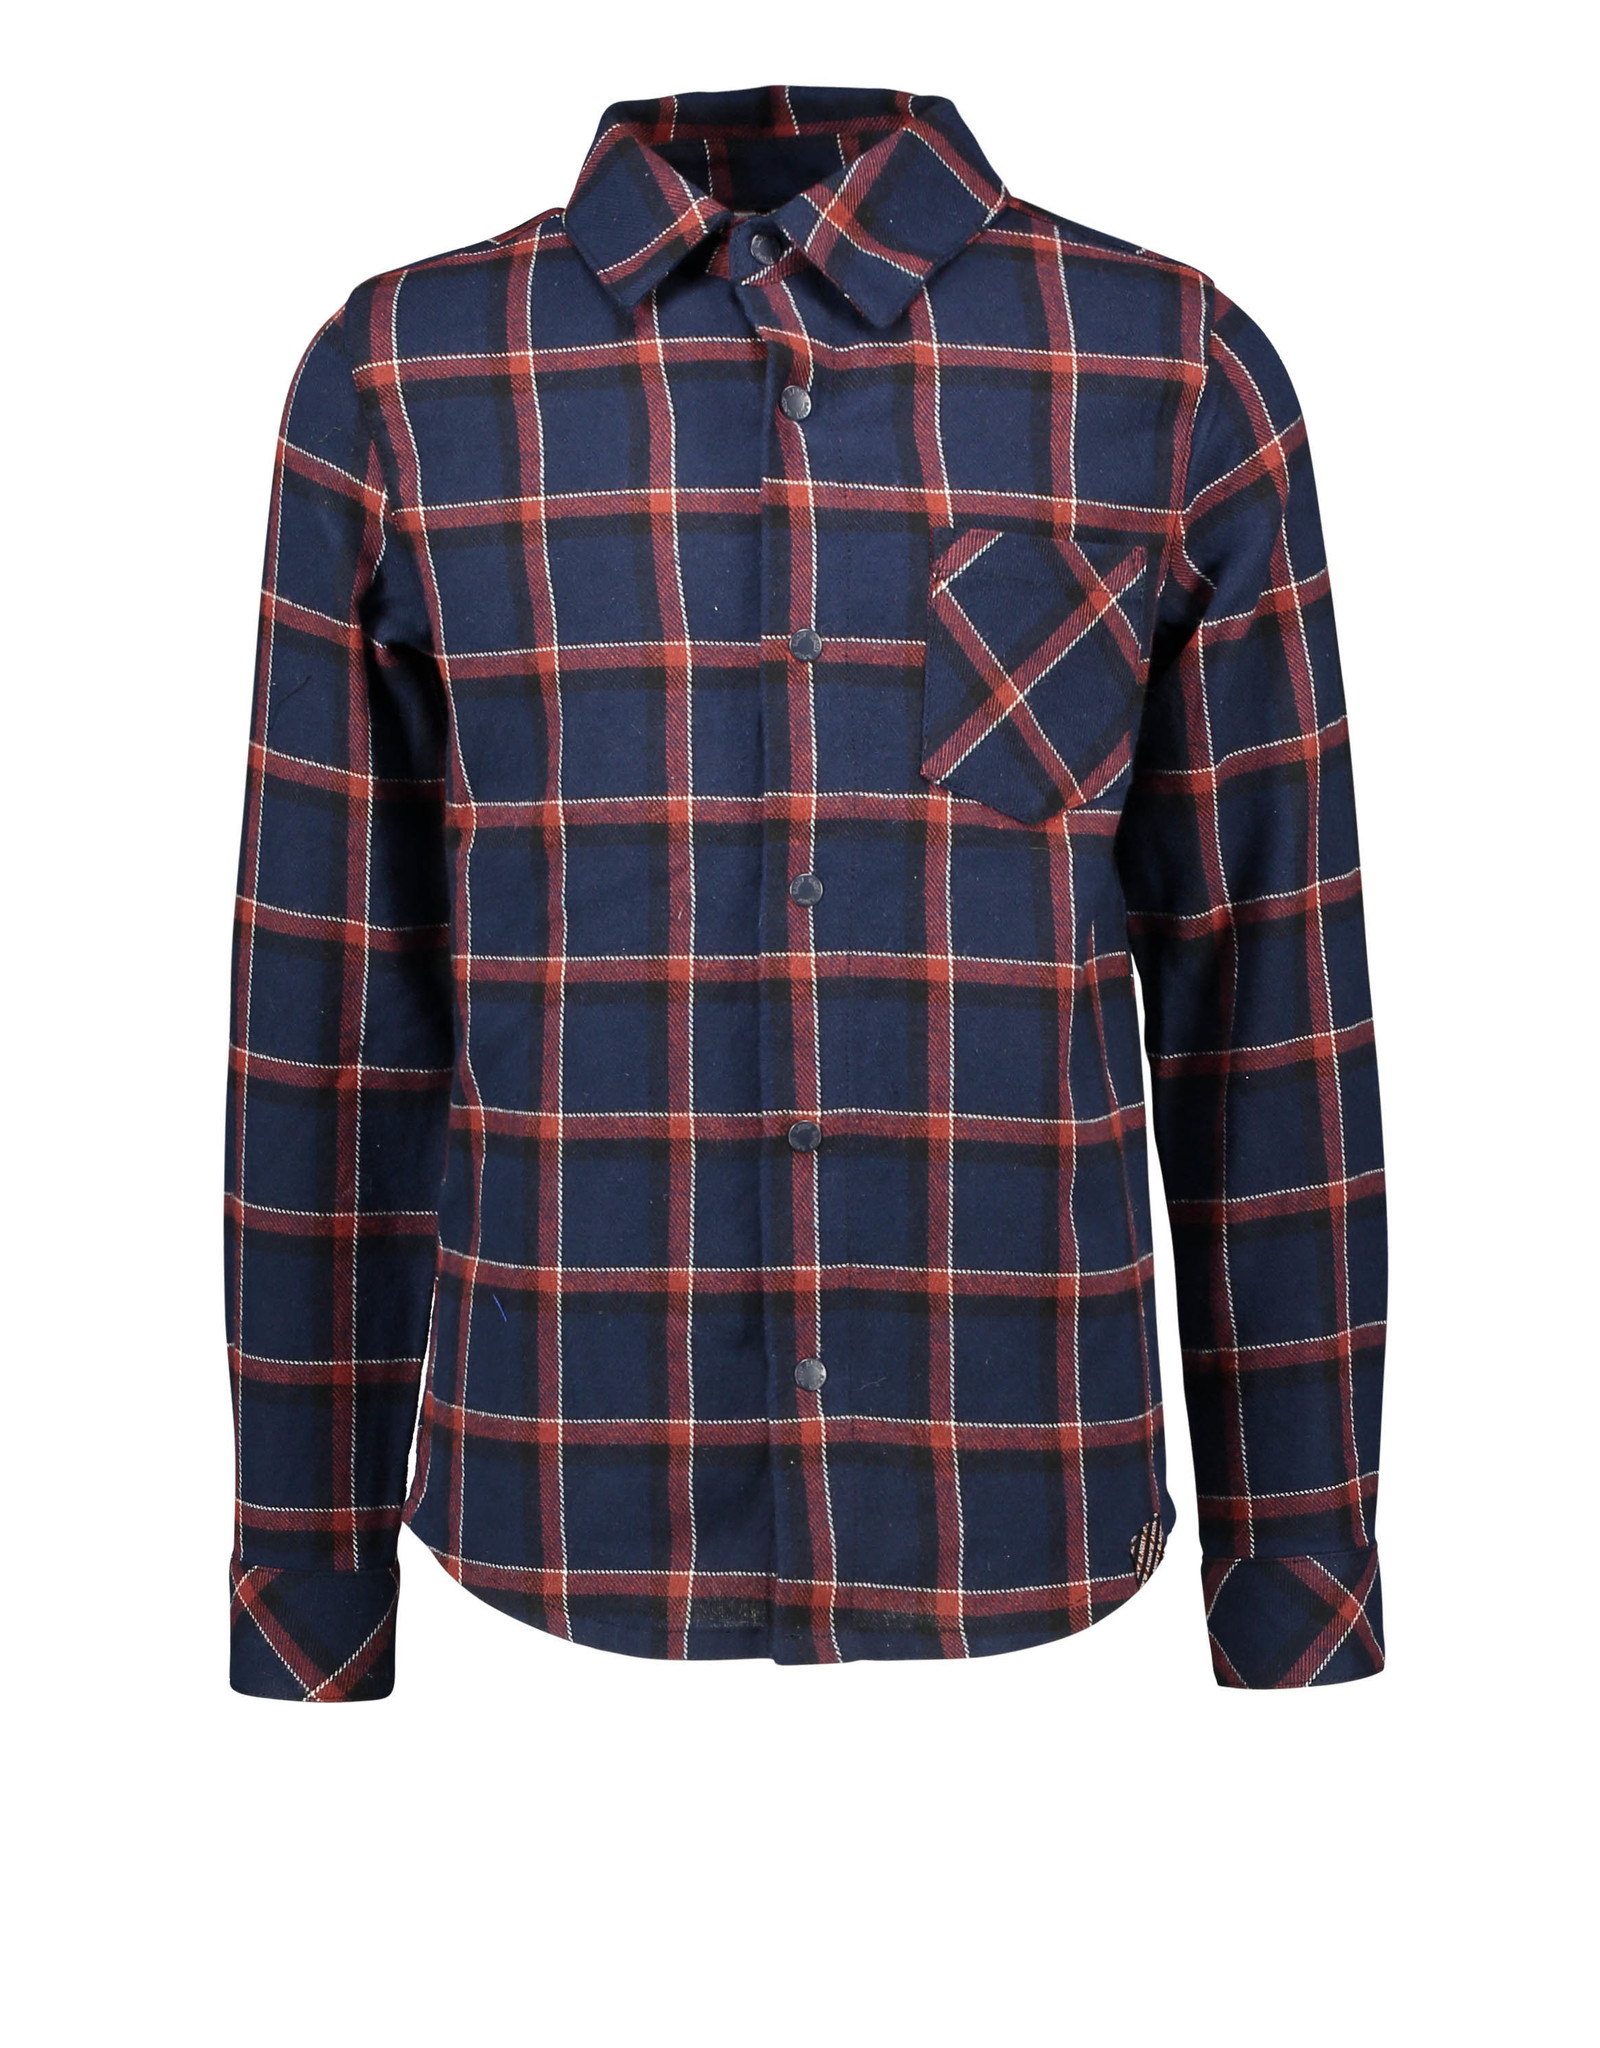 B-Nosy Boys big check woven shirt with patched pocket, clever check